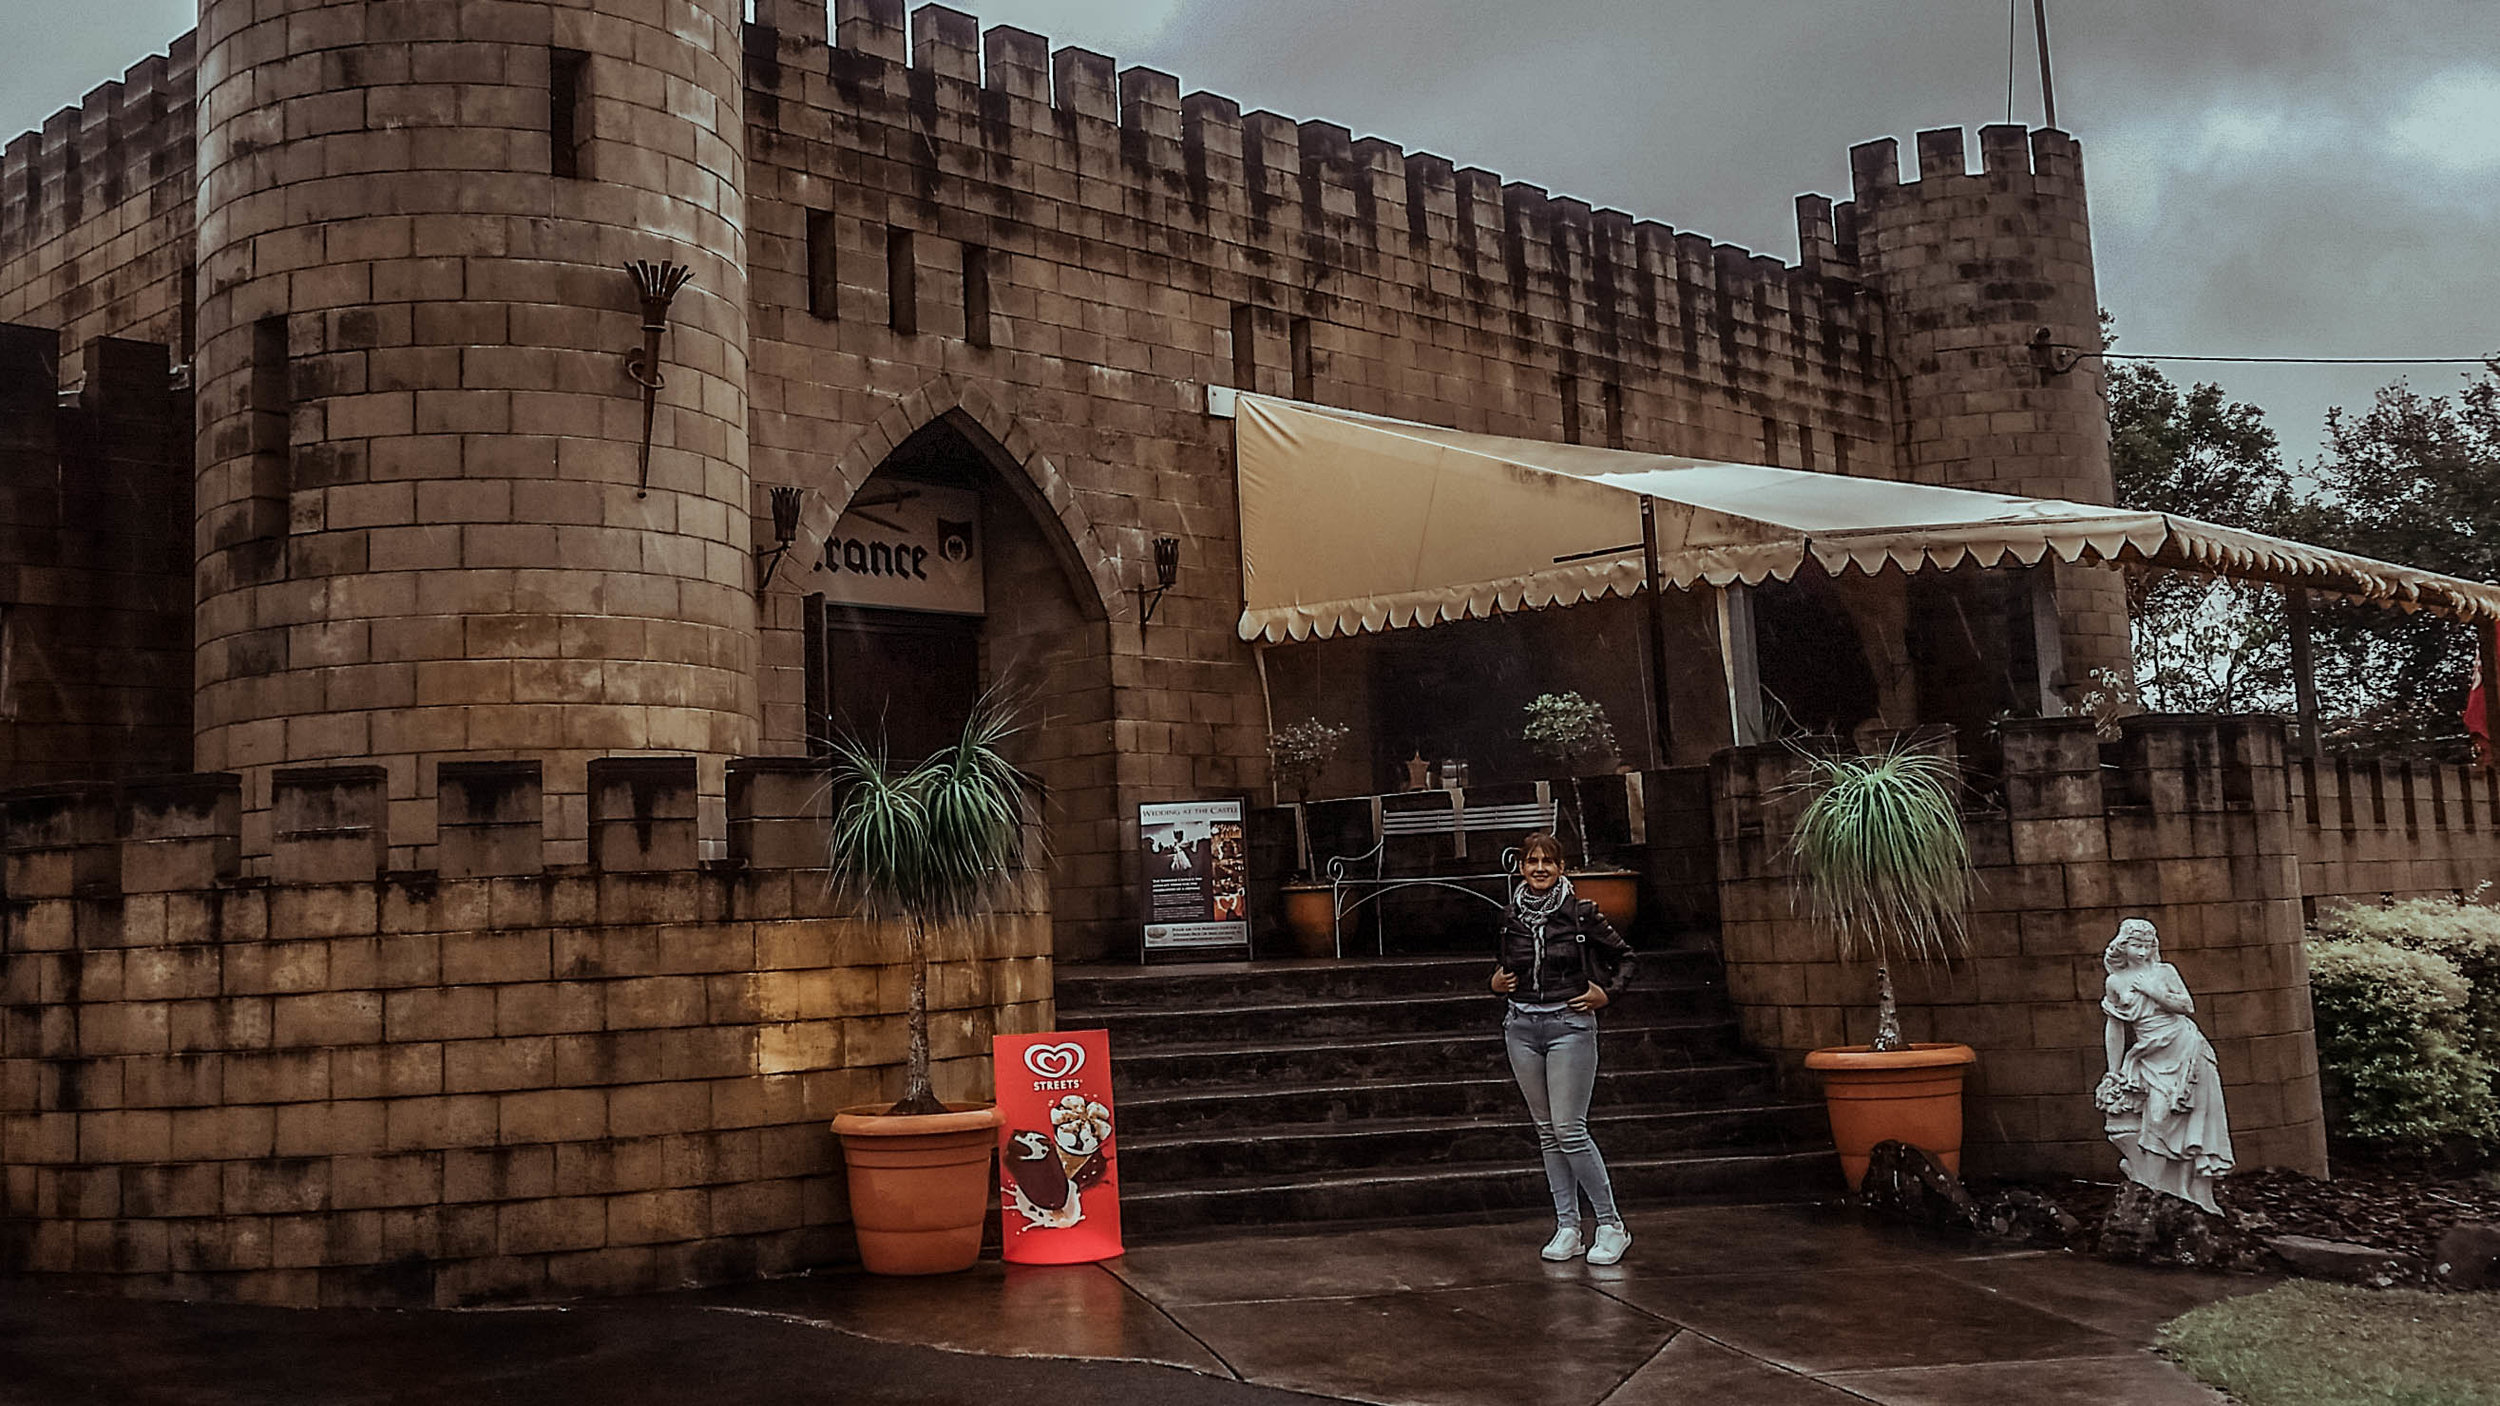 A cold, rainy, overcast day created the perfect mood and ambiance to explore a Norman castle